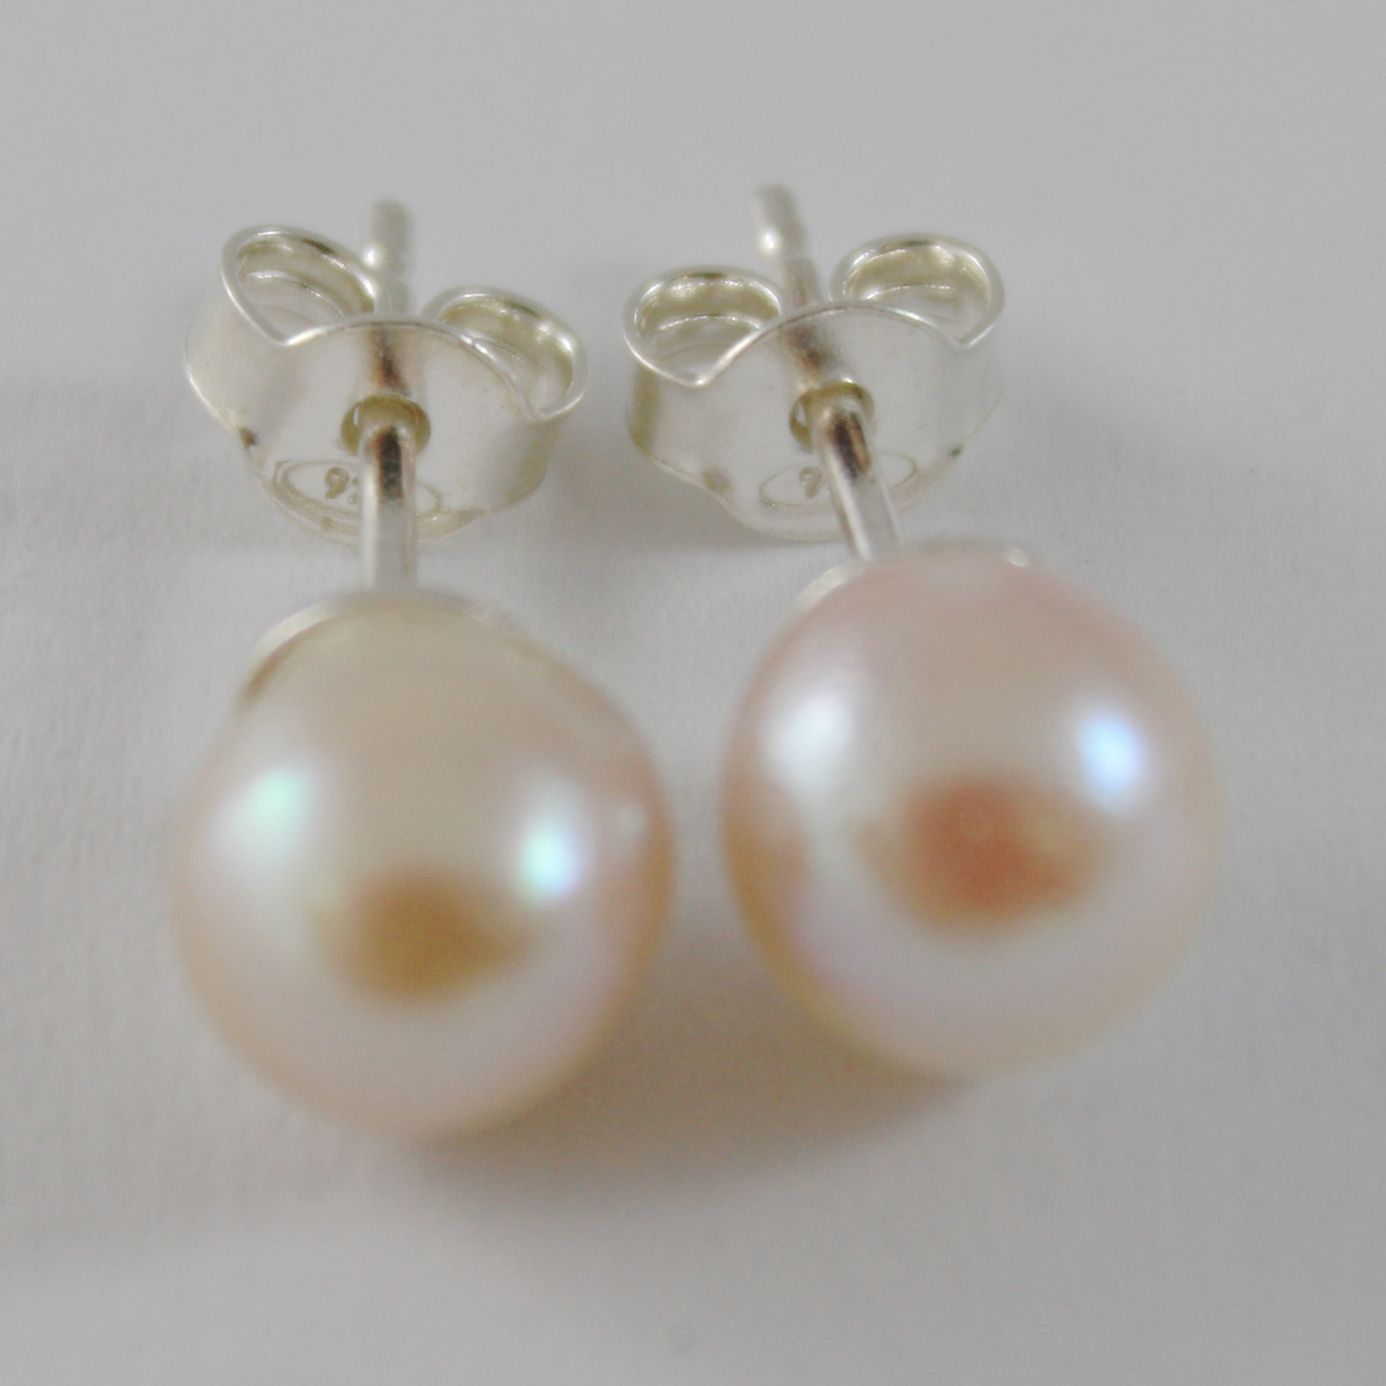 SOLID 925 STERLING SILVER EARRINGS WITH AKOYA PEARLS 7/7.5 MM WITH BUTTERFLY